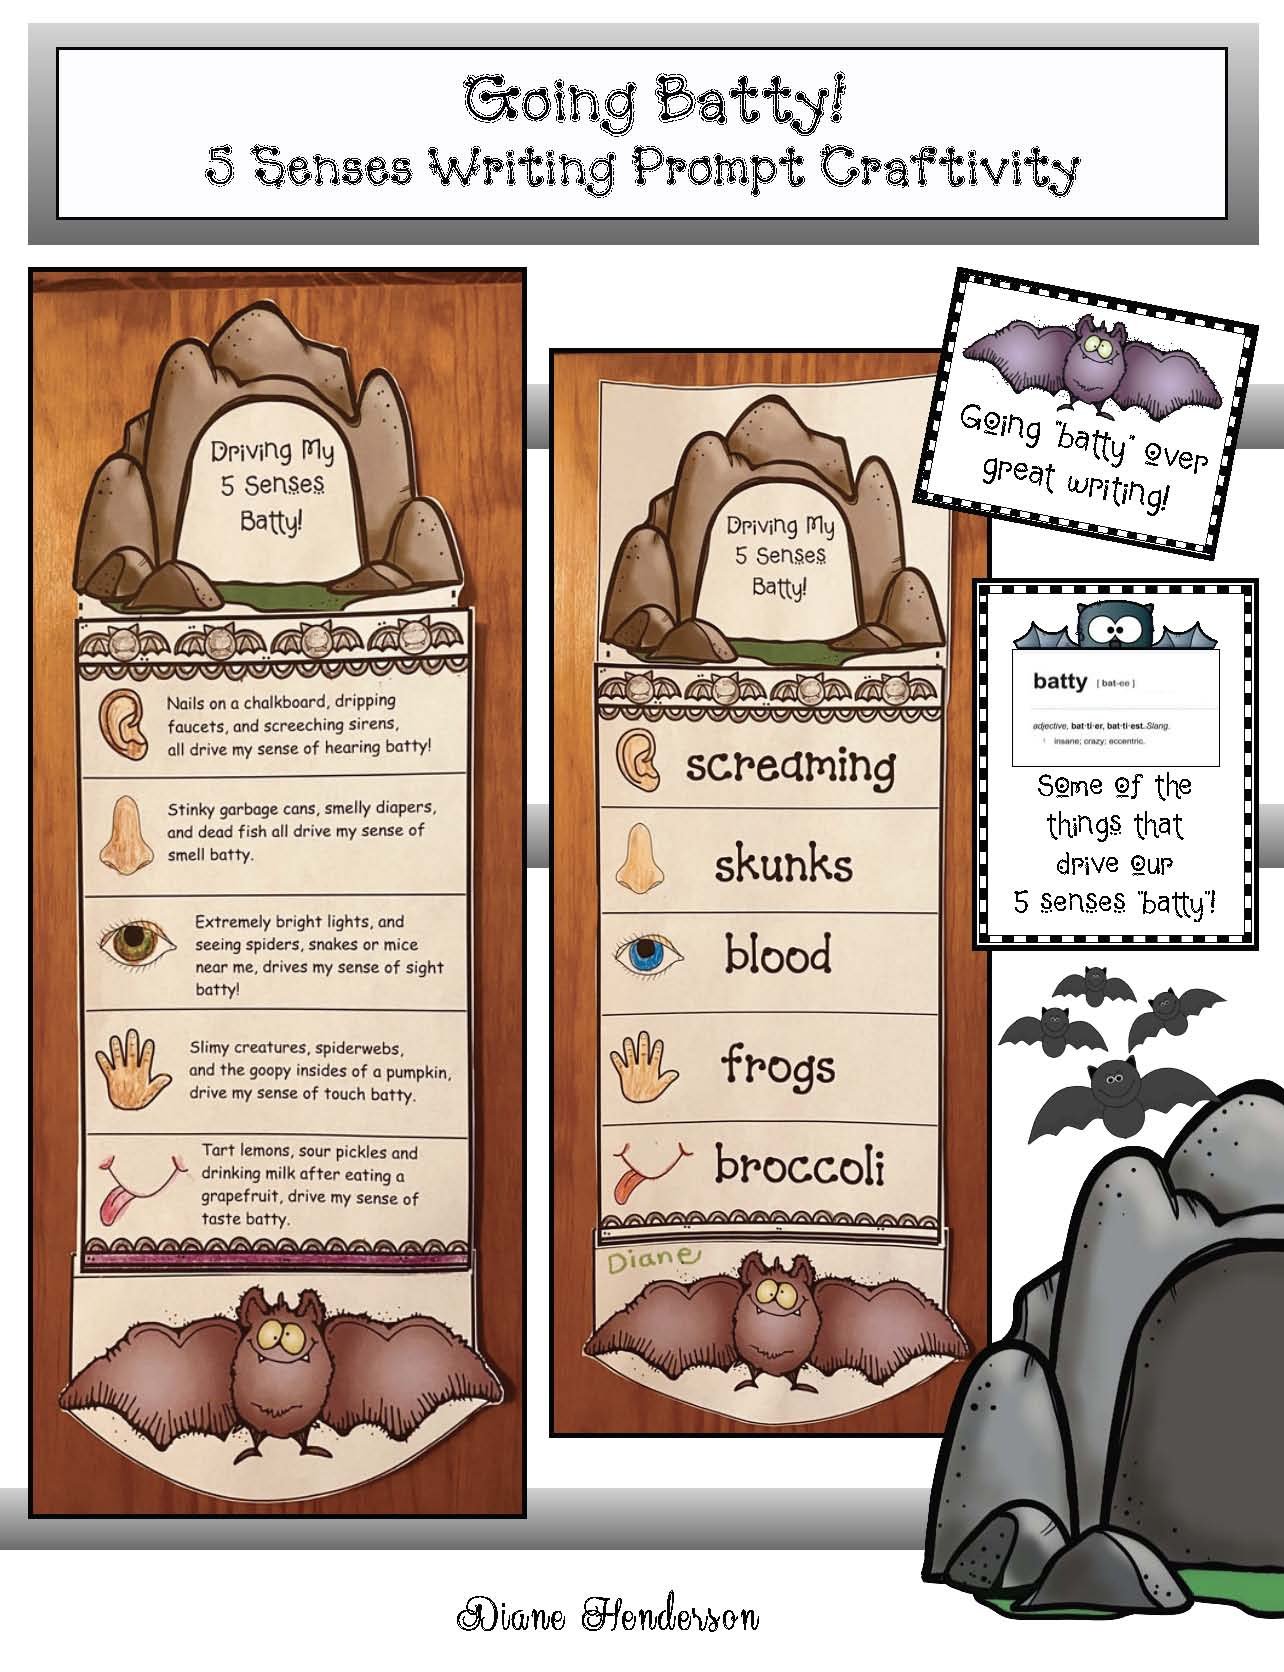 bat activities, bat crafts, bat writing prompts, 5 senses activities, 5 senses crafts, 5 senses writing prompts, literacy centers, October writing prompts, October bulletin board ideas